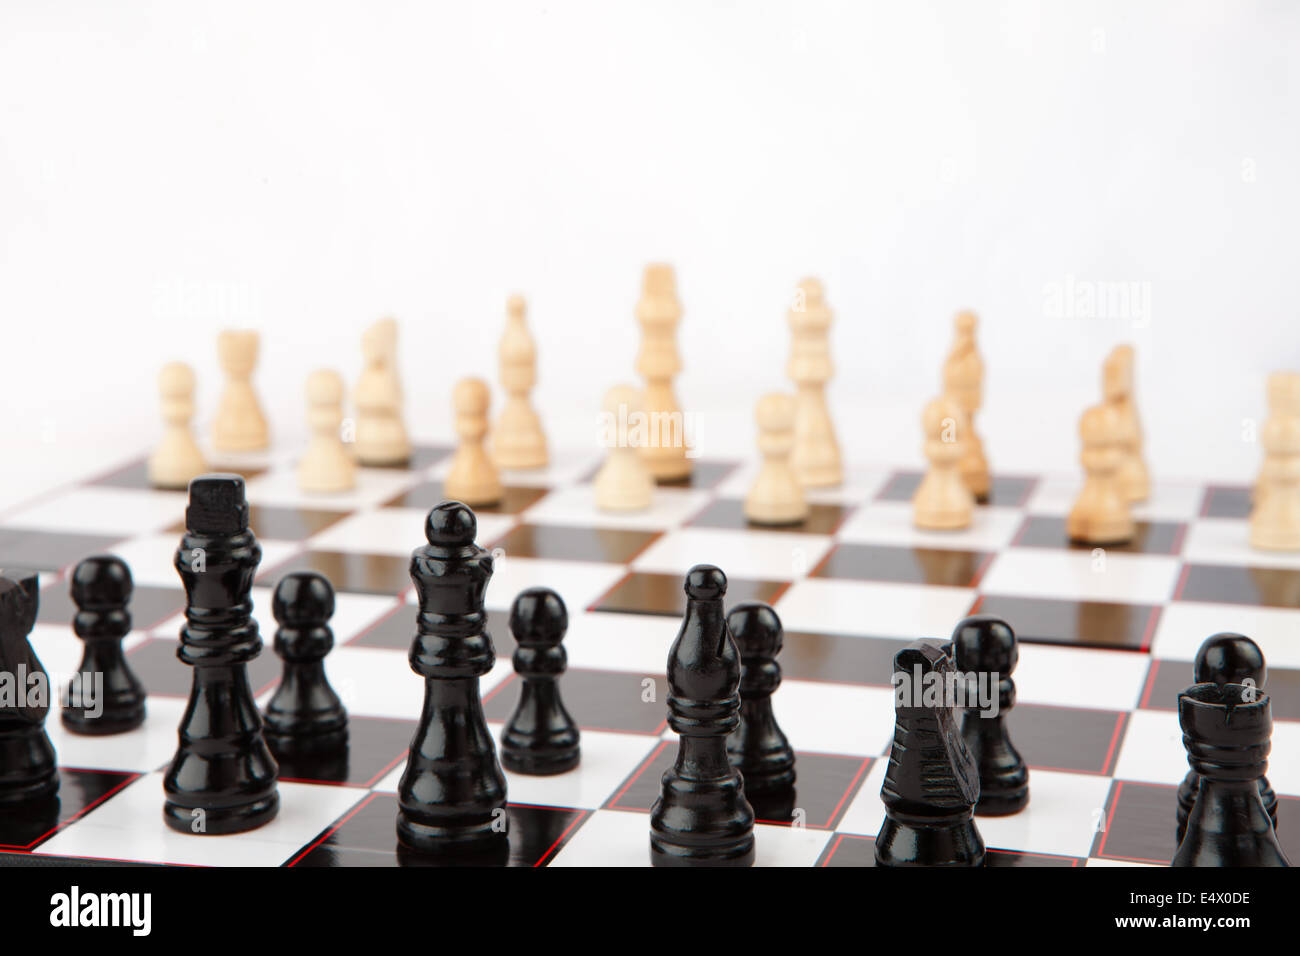 Chessboard set up to play - Stock Image